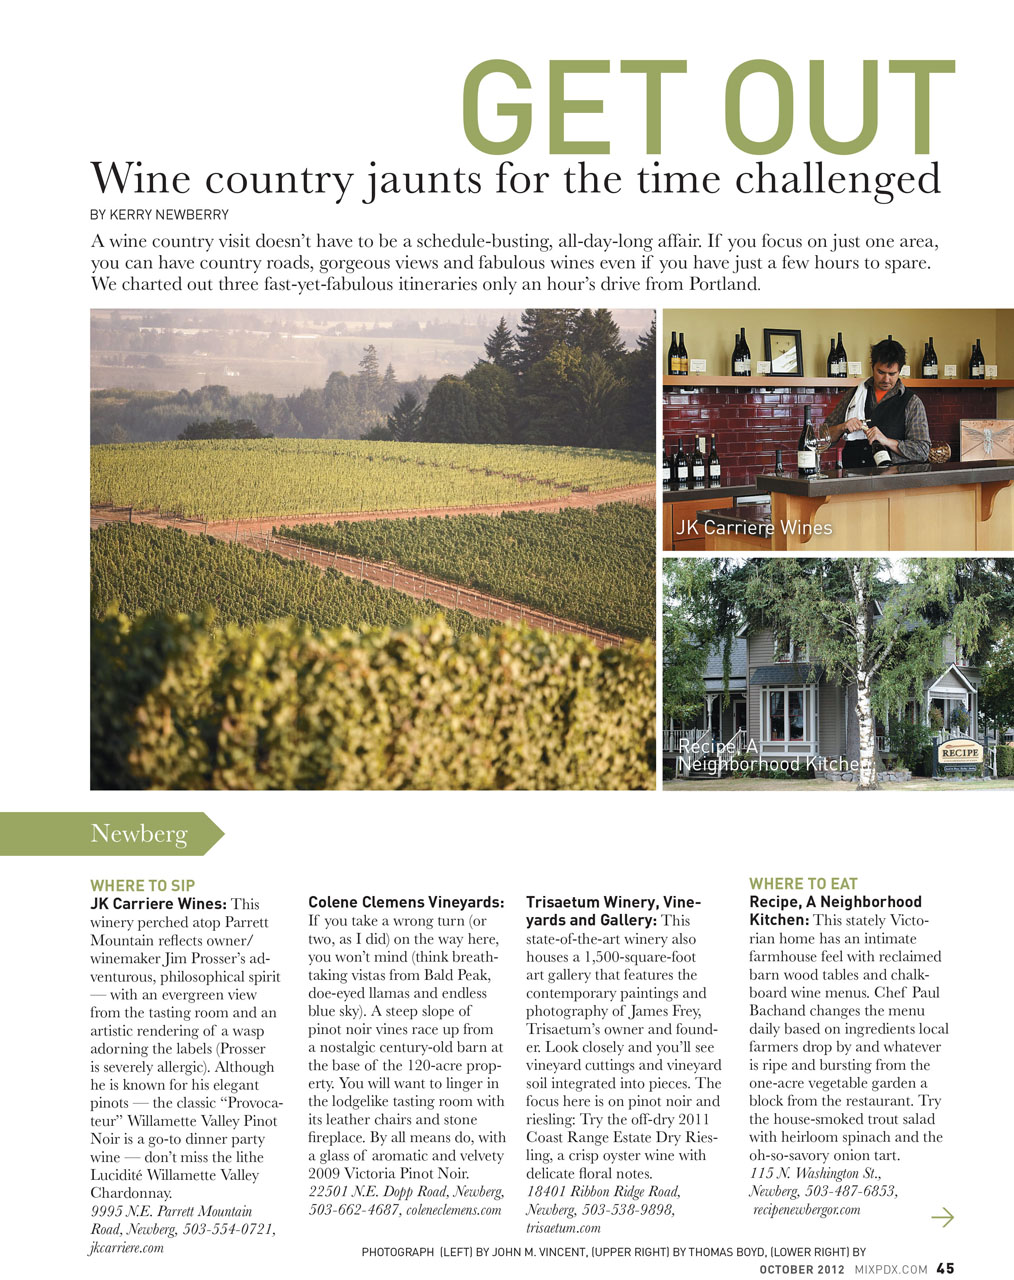 Wine Country Jaunts for the Time Challenged